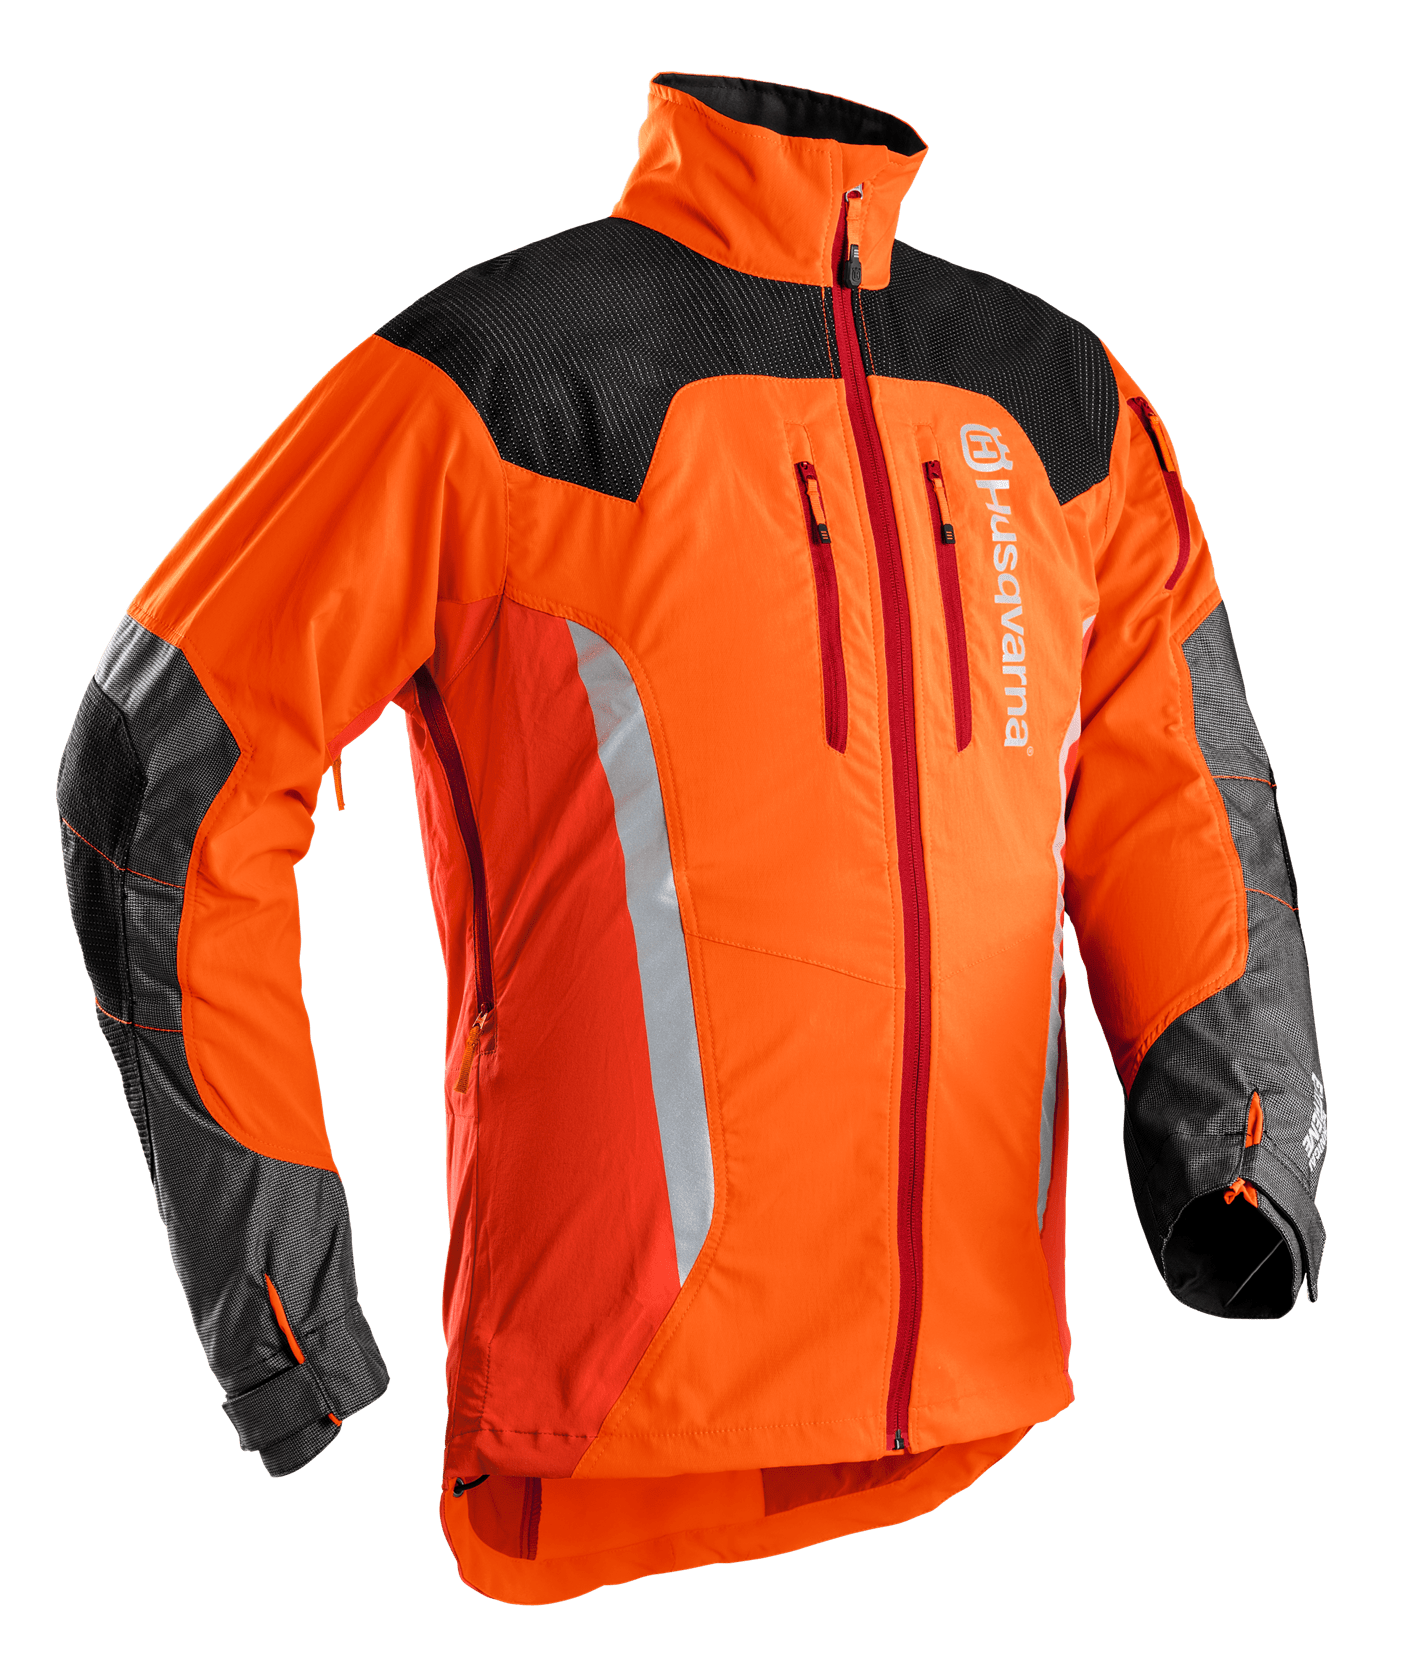 Technical Extreme Forest jacket